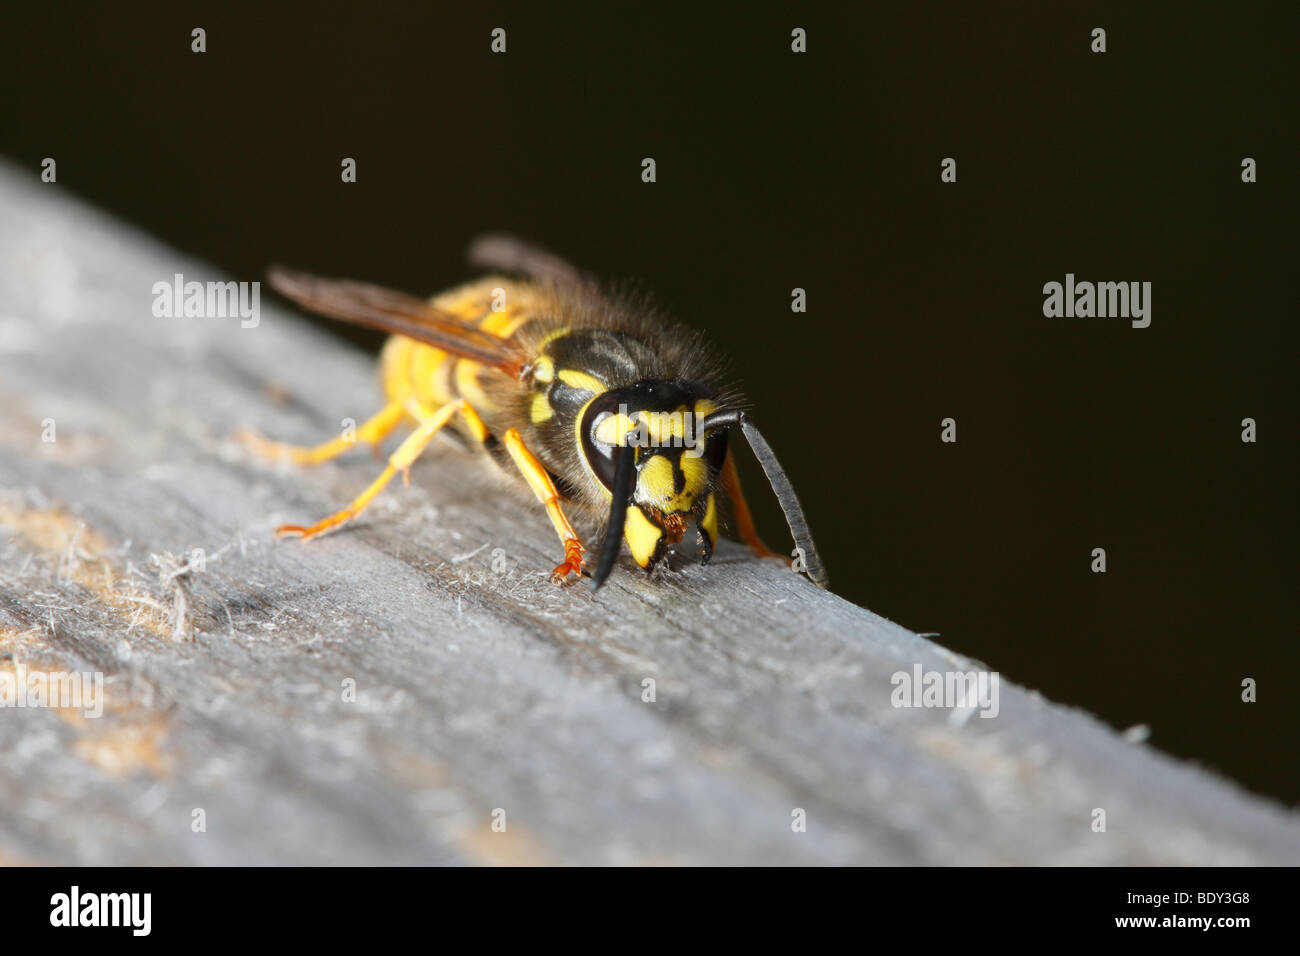 Common Wasp chewing wooden handrail to collect material to construct nest. - Stock Image